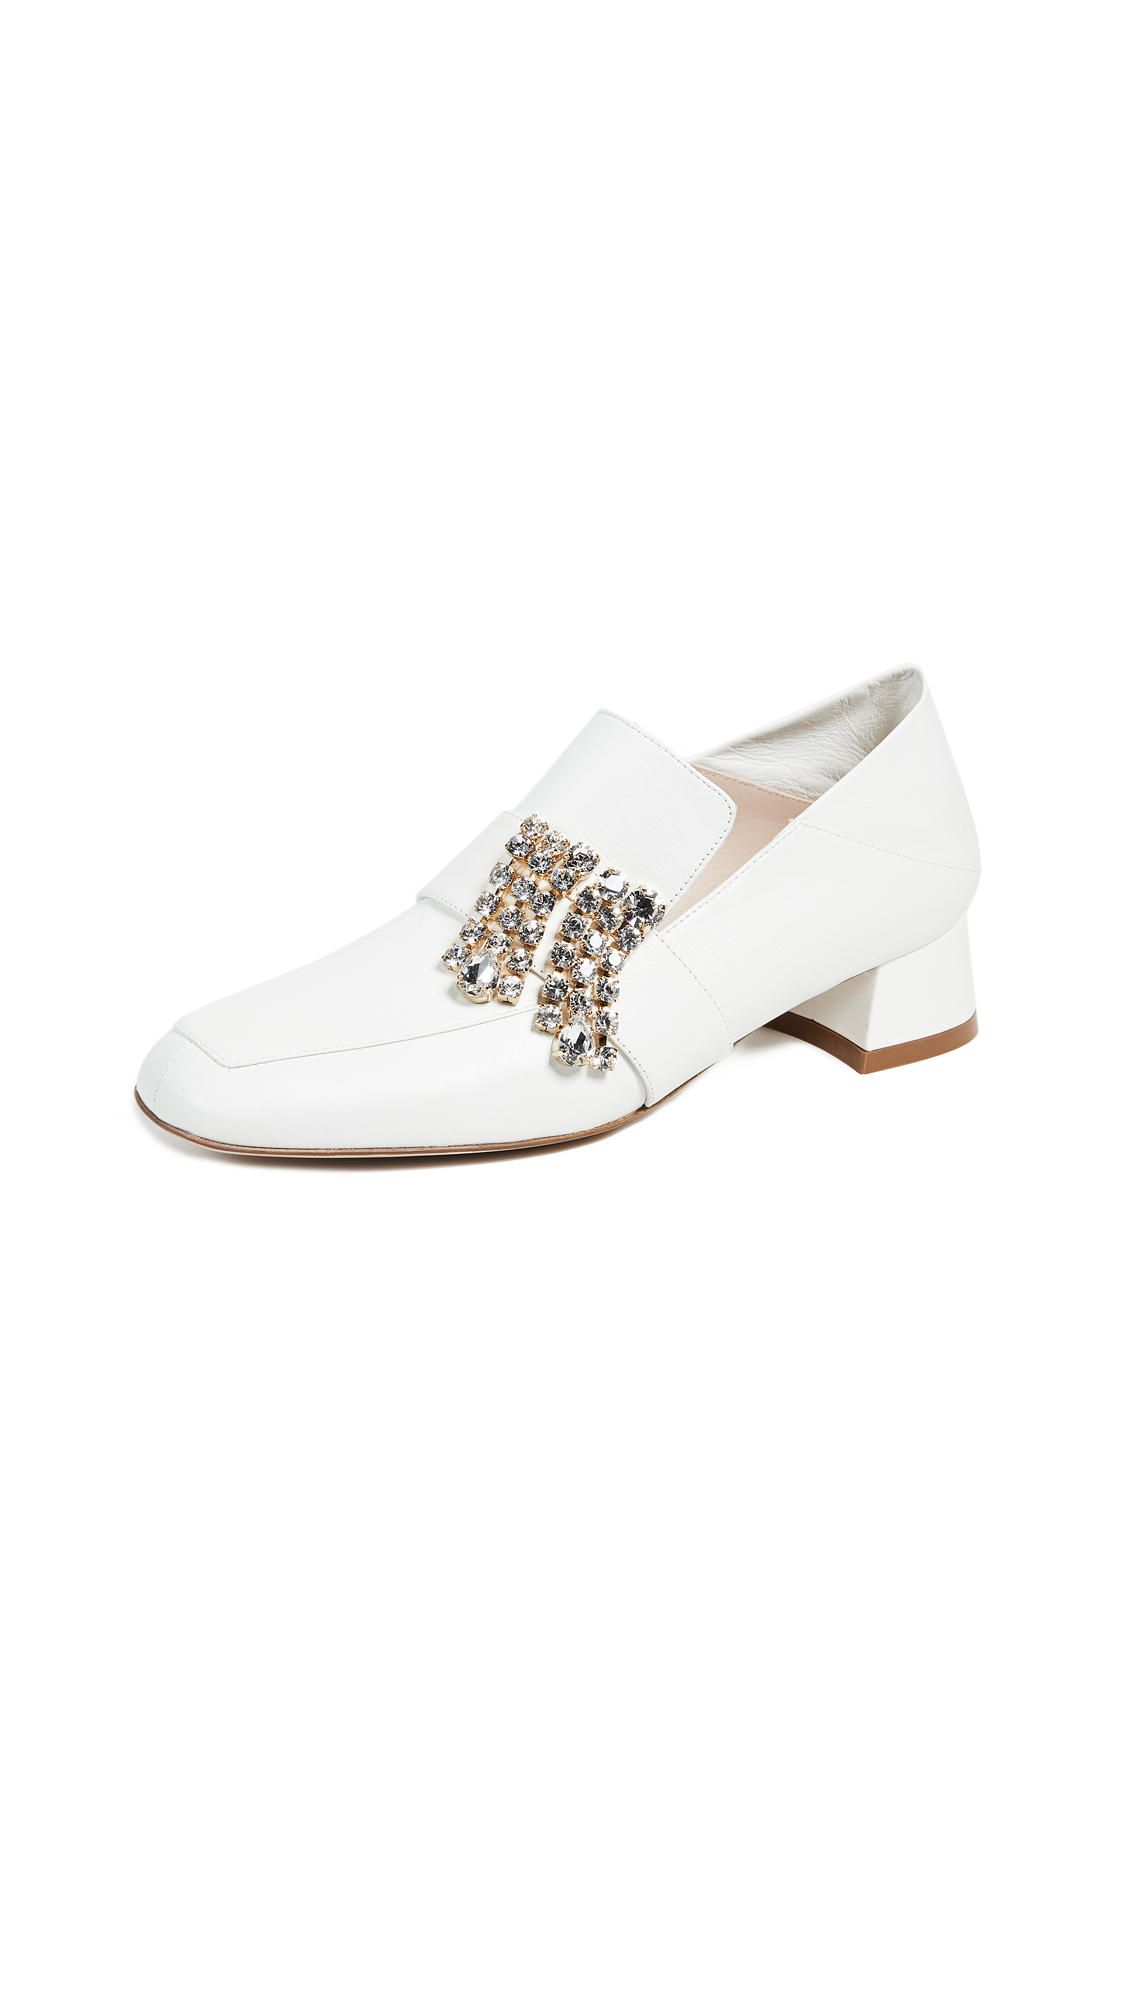 Stuart Weitzman Irises Convertible Loafers - White